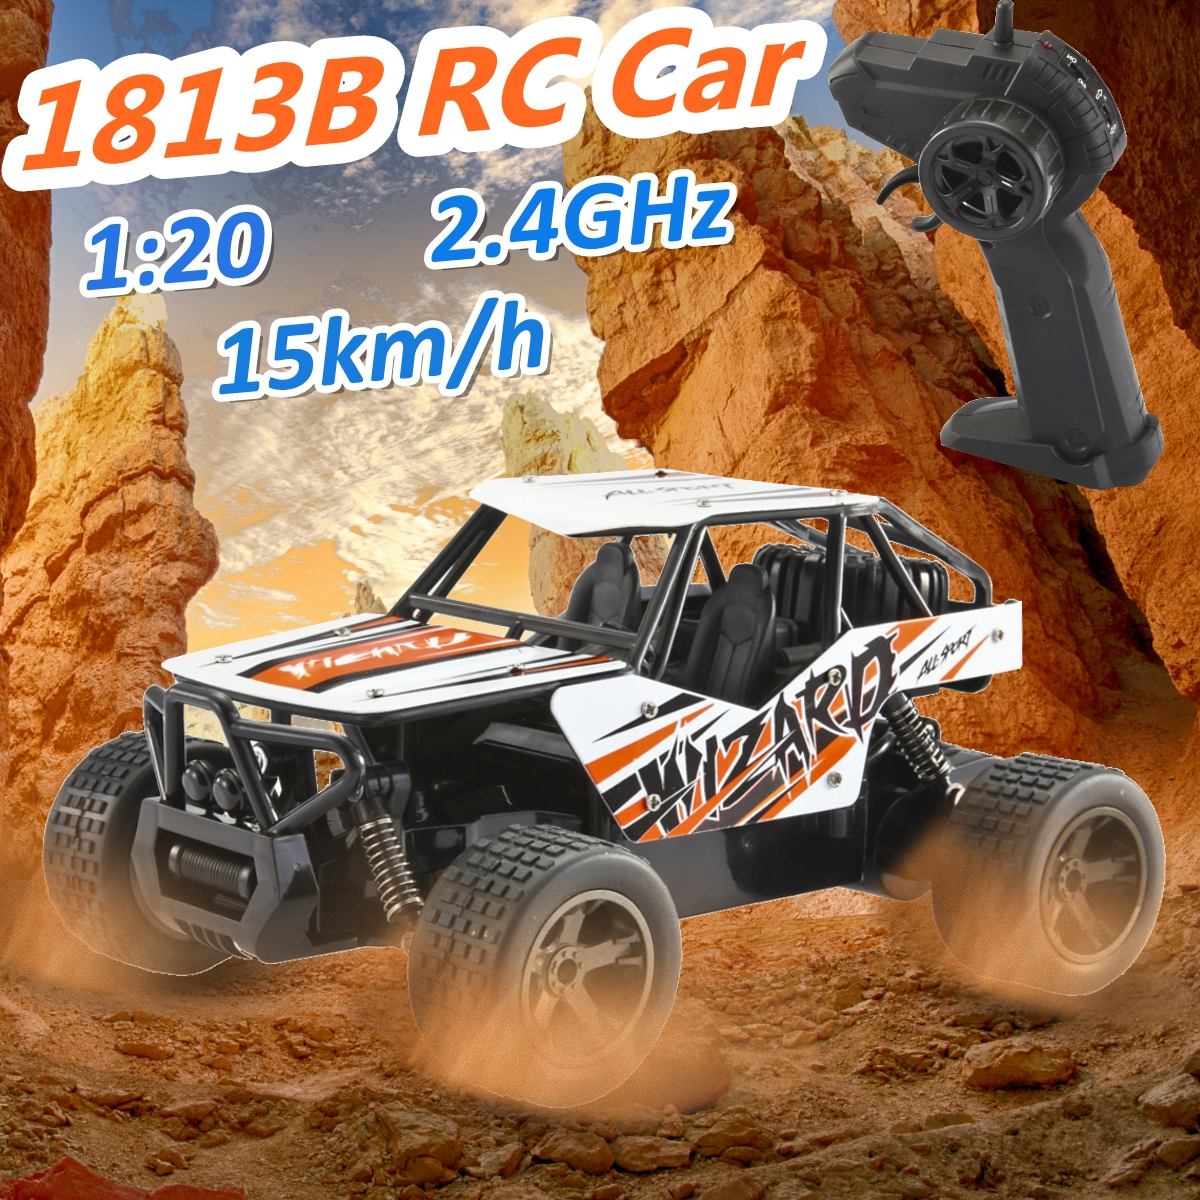 1:20 2.4GHz 4WD High Speed Radio Fast Remote Control RC Car Off-Road Truck RTR Toy For Children Gift, Red